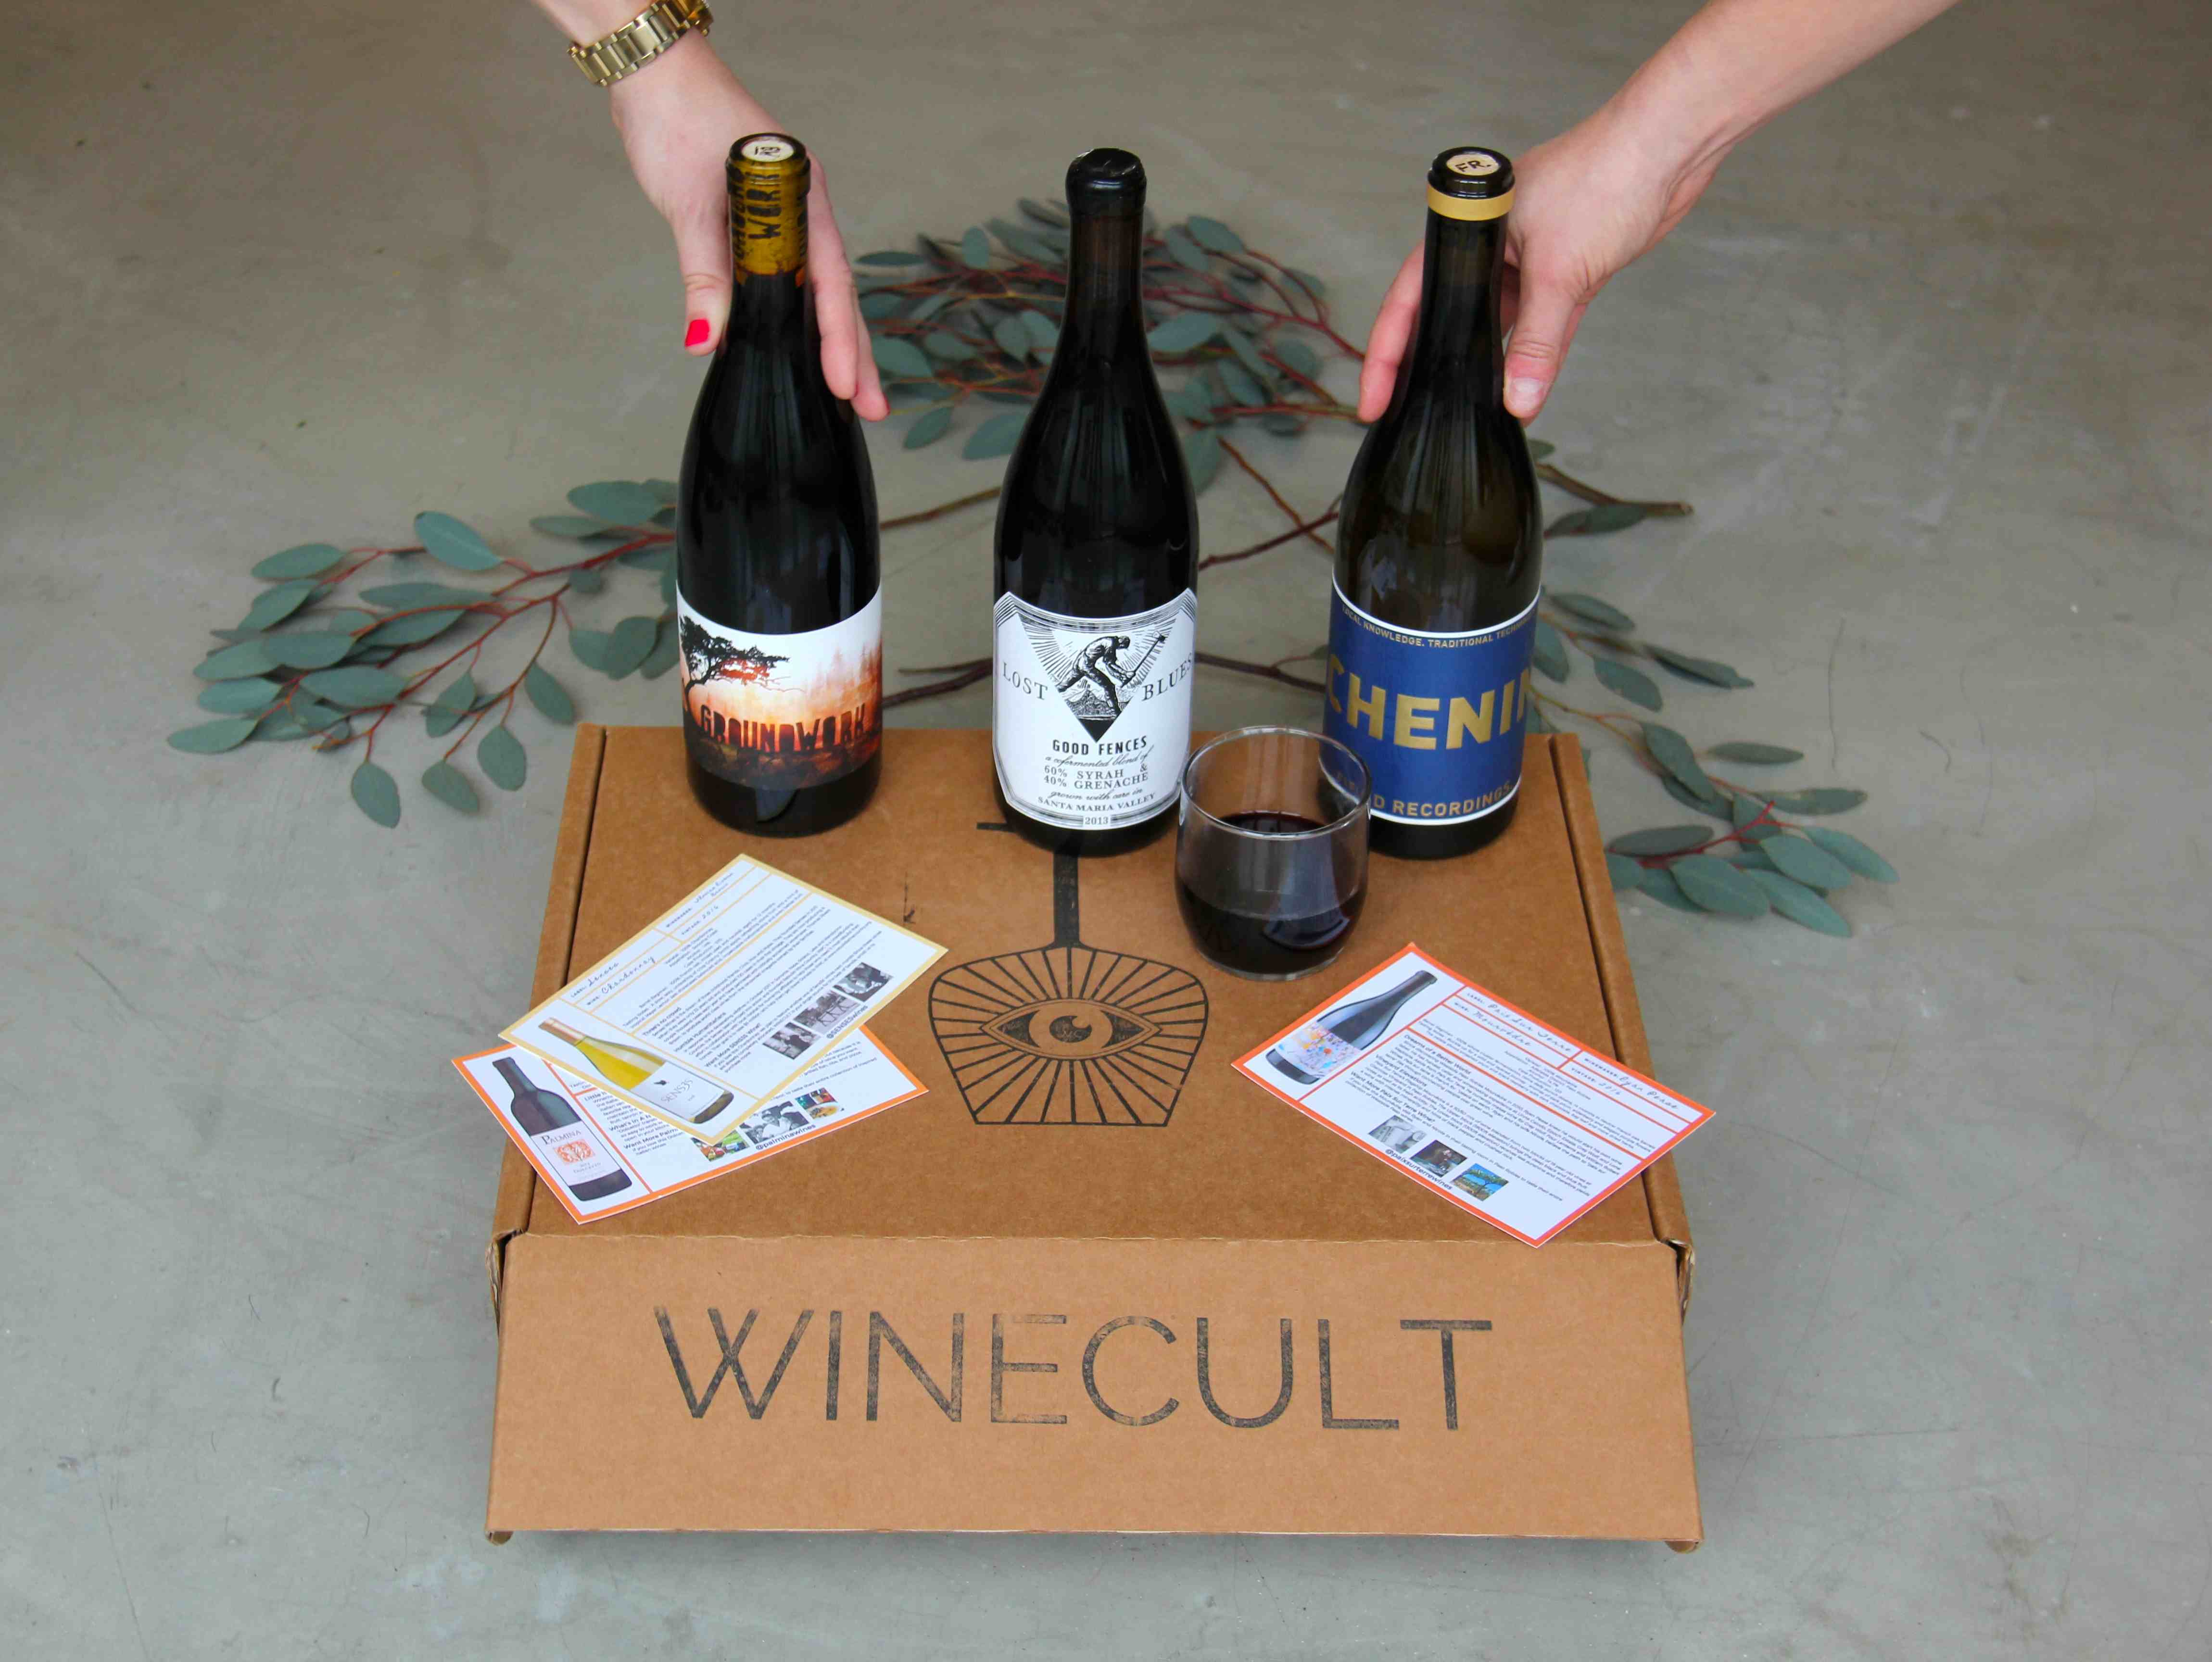 WINECULT Club Box with 3 bottles of wine